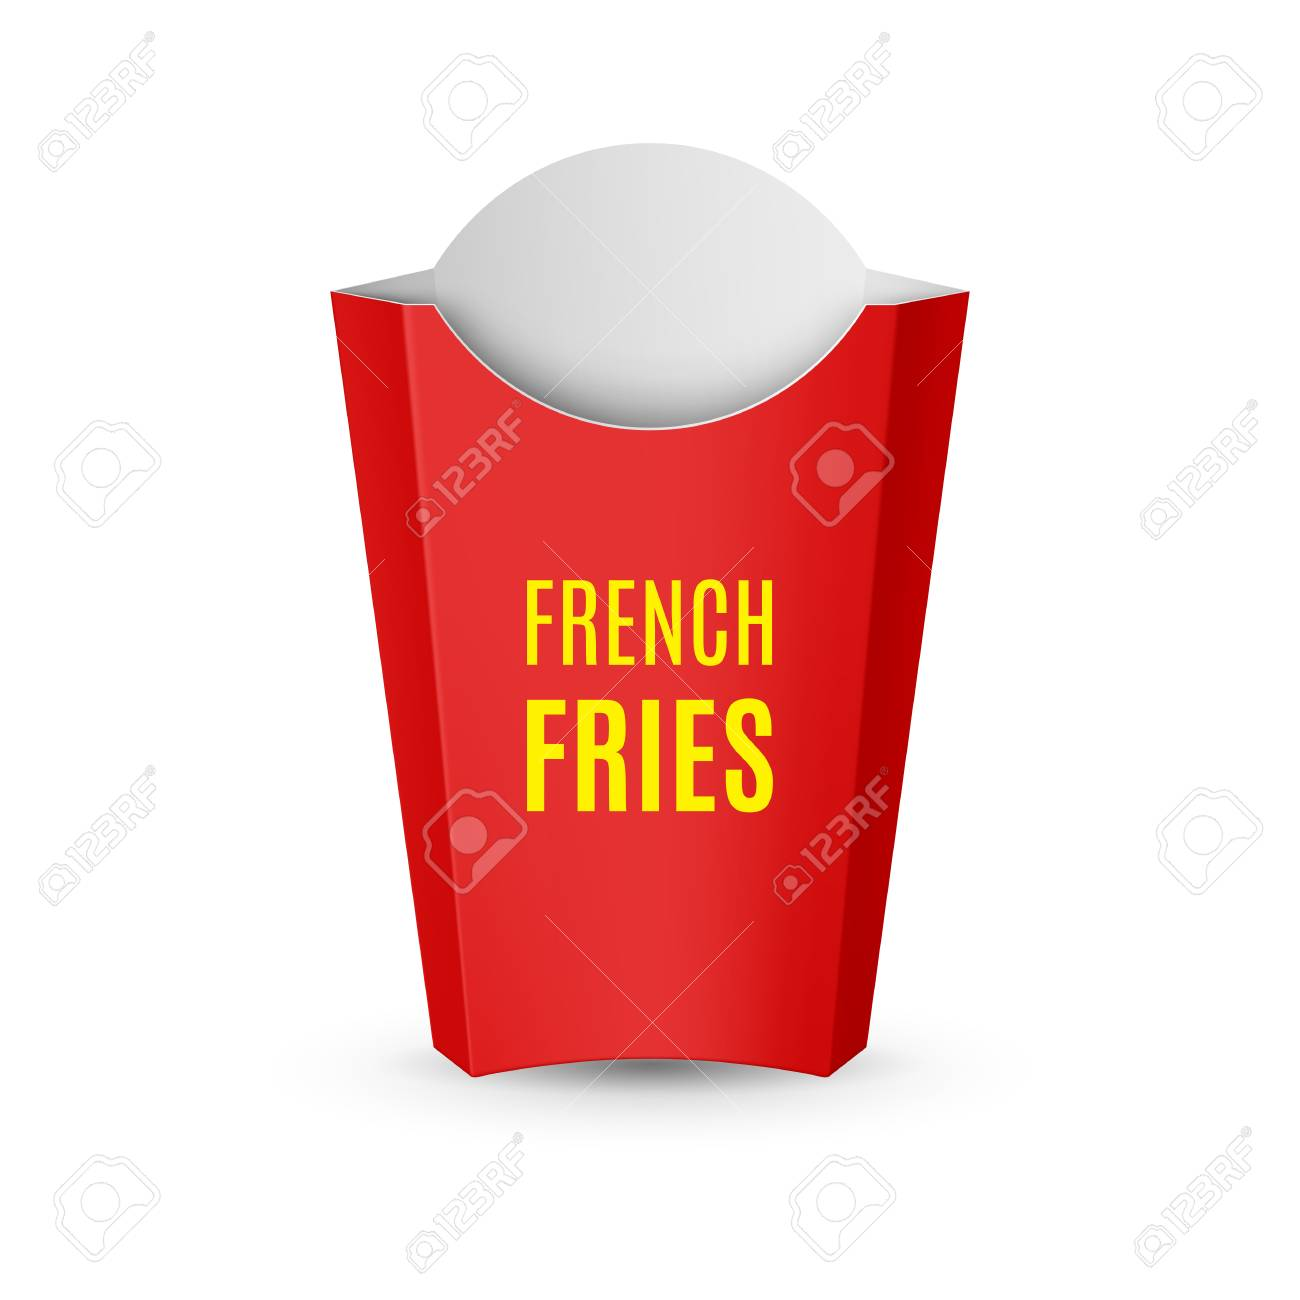 Fast Food Icon Empty Red Packaging For French Fries For Design